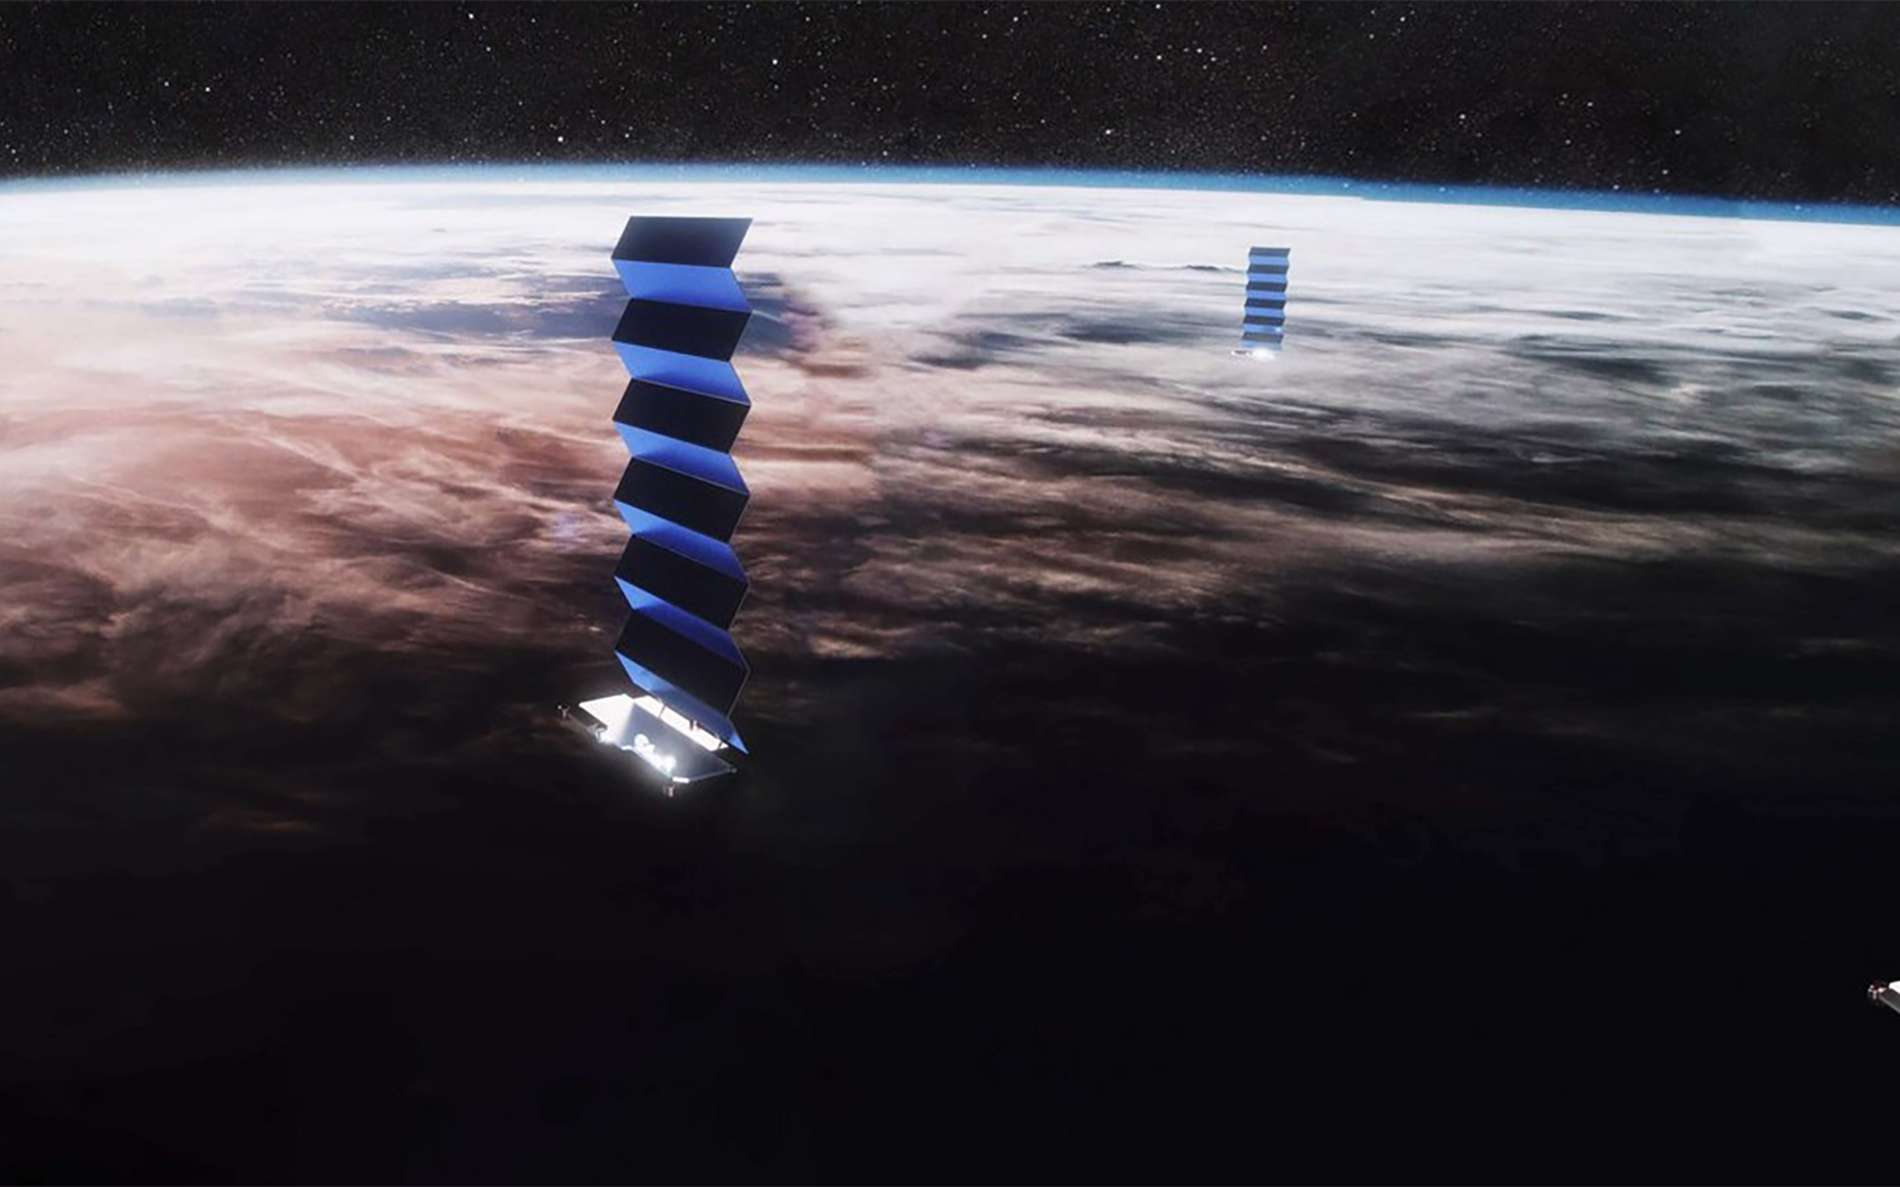 Starlink est une mégaconstellation de satellites de la société SpaceX qui, à terme, pourrait compter jusqu'à 42.000 satellite. Vue d'artiste d'un des satellites de la constellation Starlink. © SpaceX